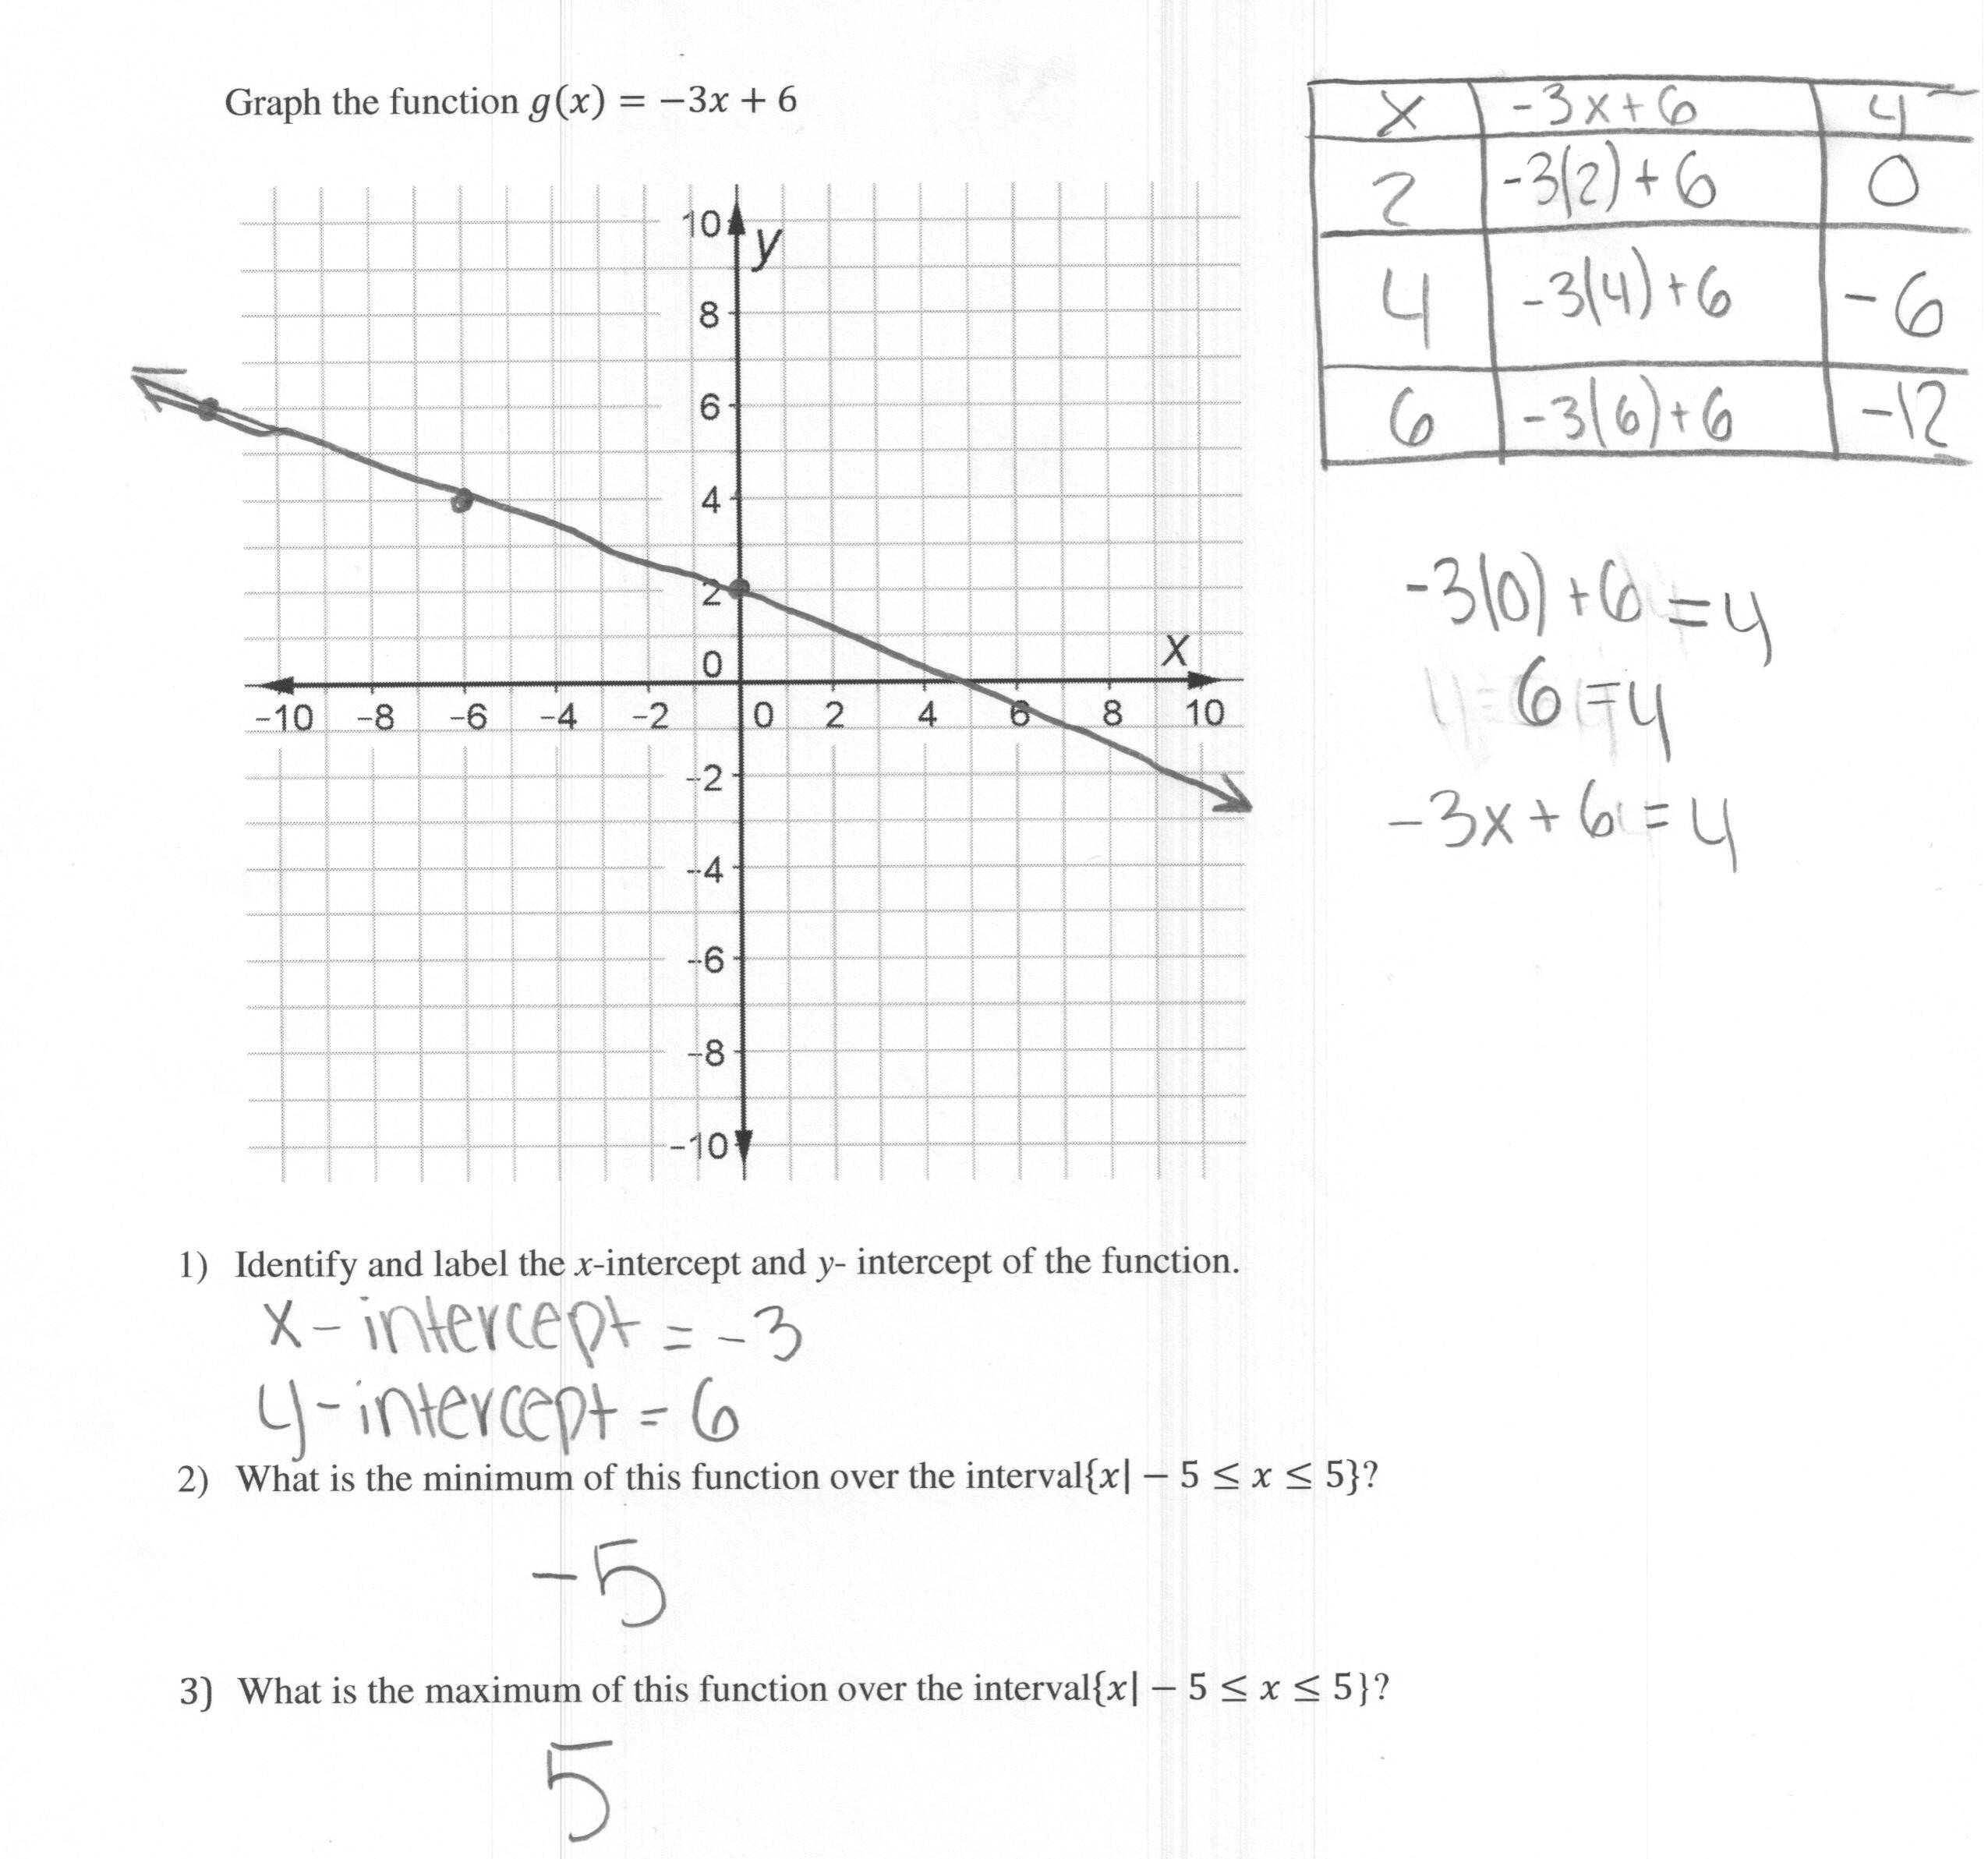 graphing a linear function students are asked to graph a linear